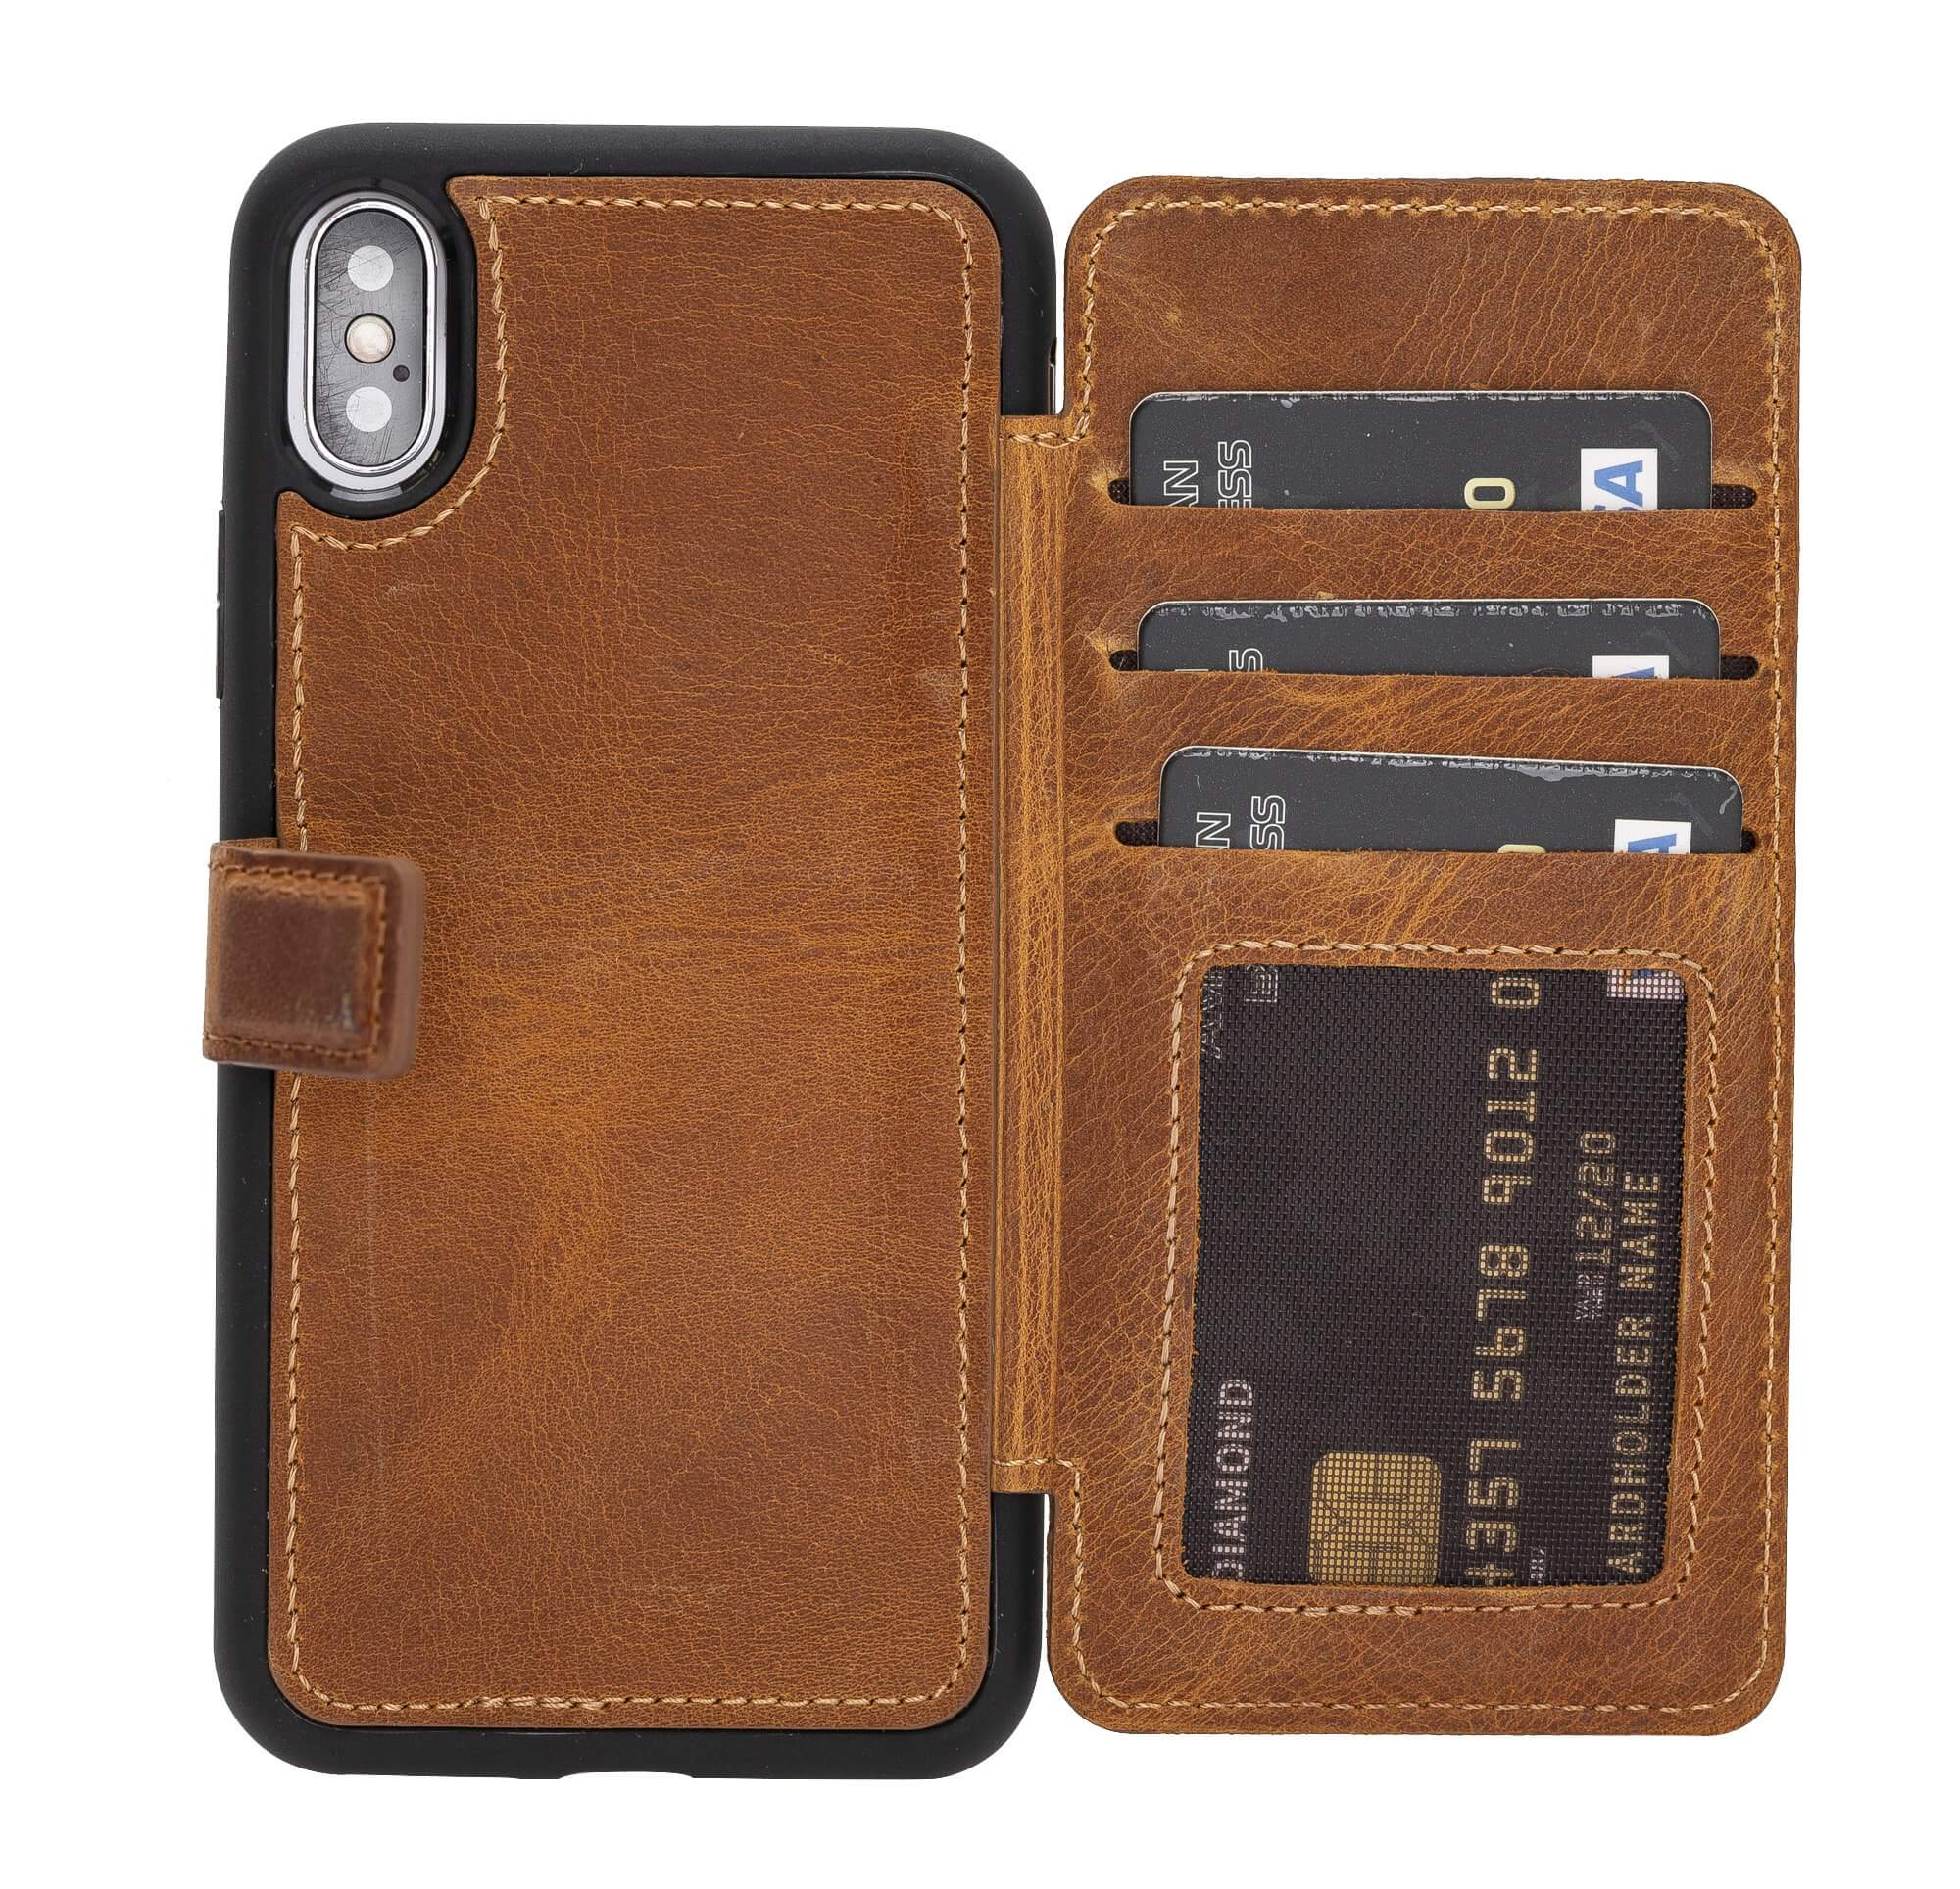 Verona RFID Blocking Leather Slim Wallet Case for iPhone X